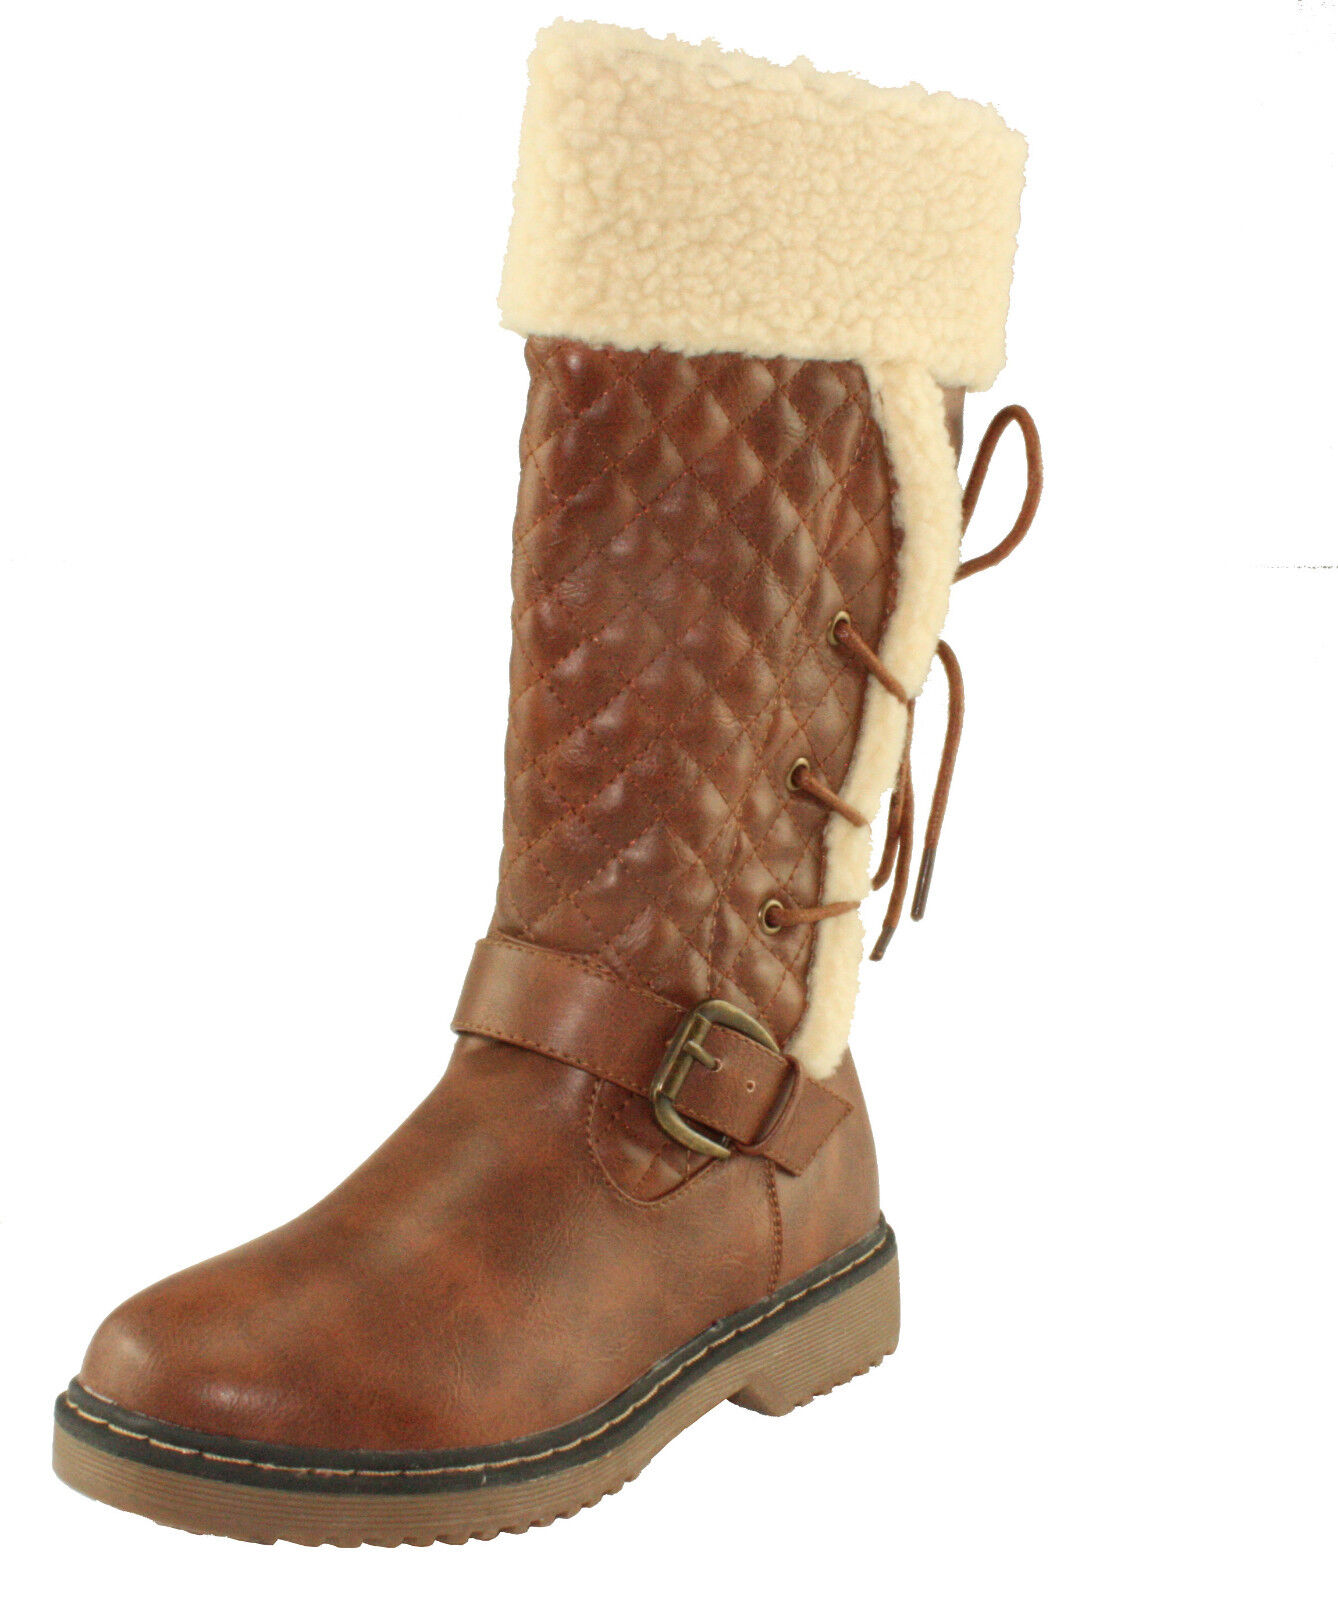 Forever Alyson-42 Comfort Knee High Pull-on Lace up & Buckle Decor Winter Boots